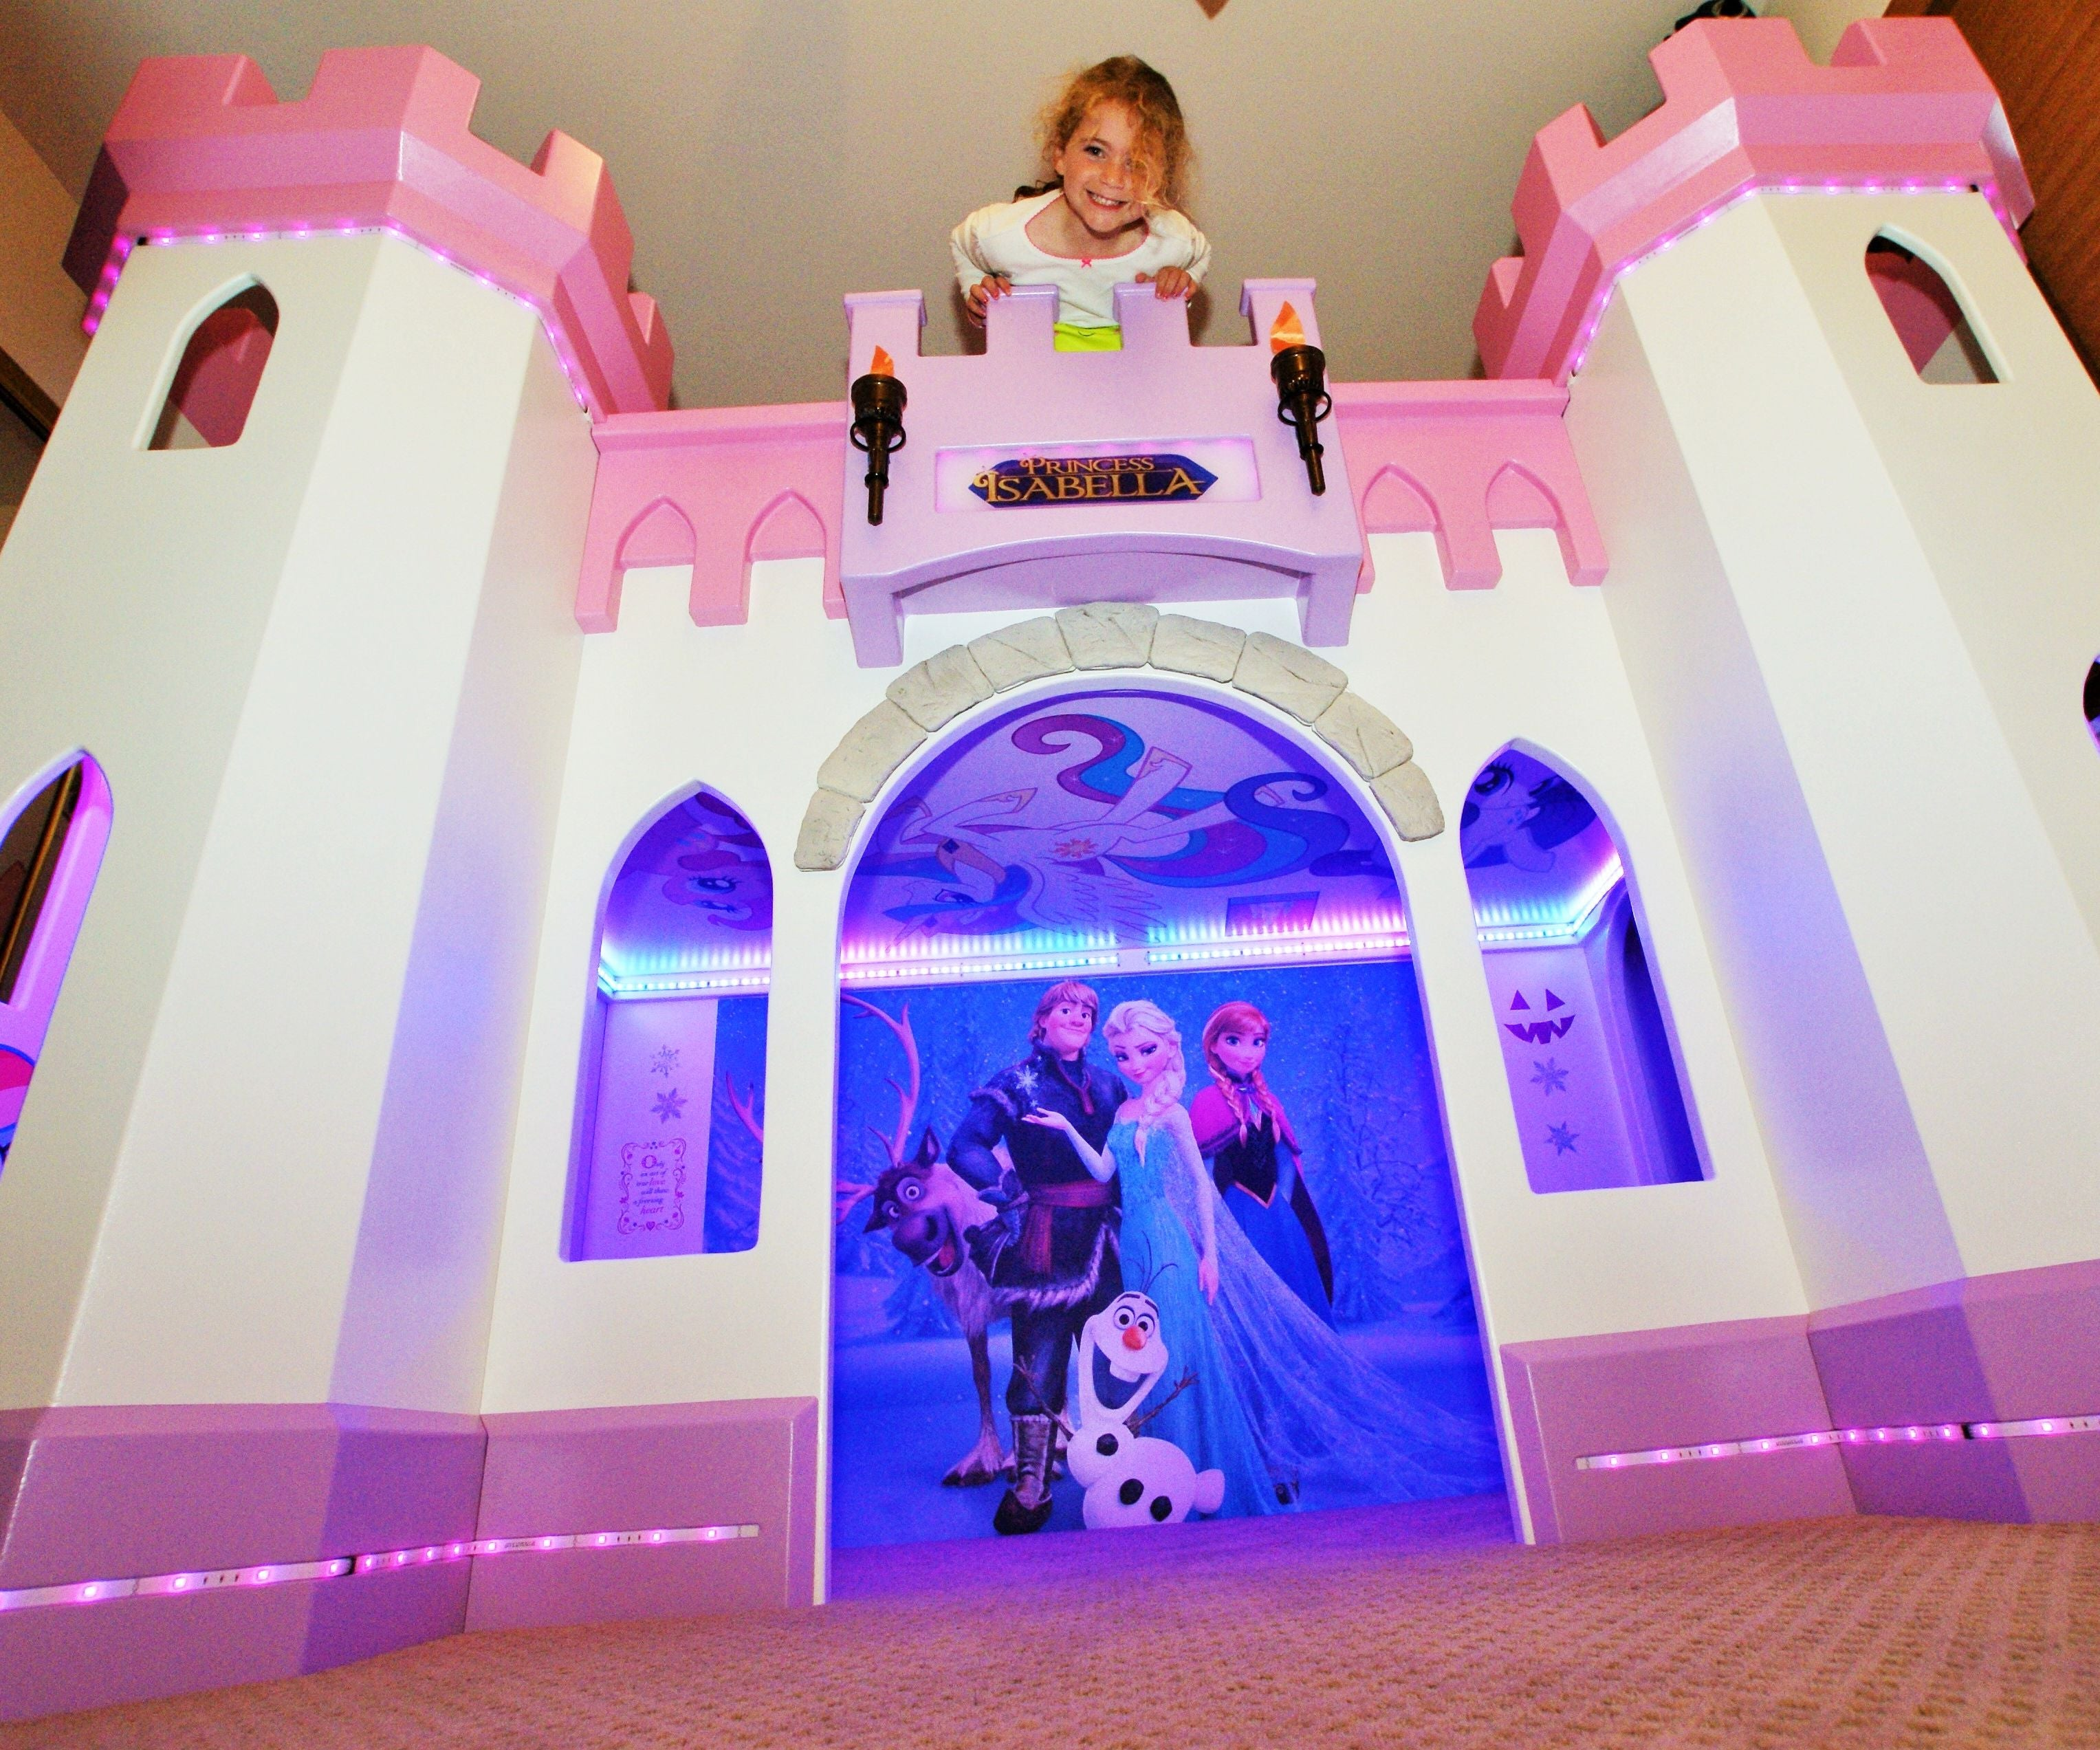 Building A Pretty Princess Castle Bed Your Child Will Love 9 Steps With Pictures Instructables